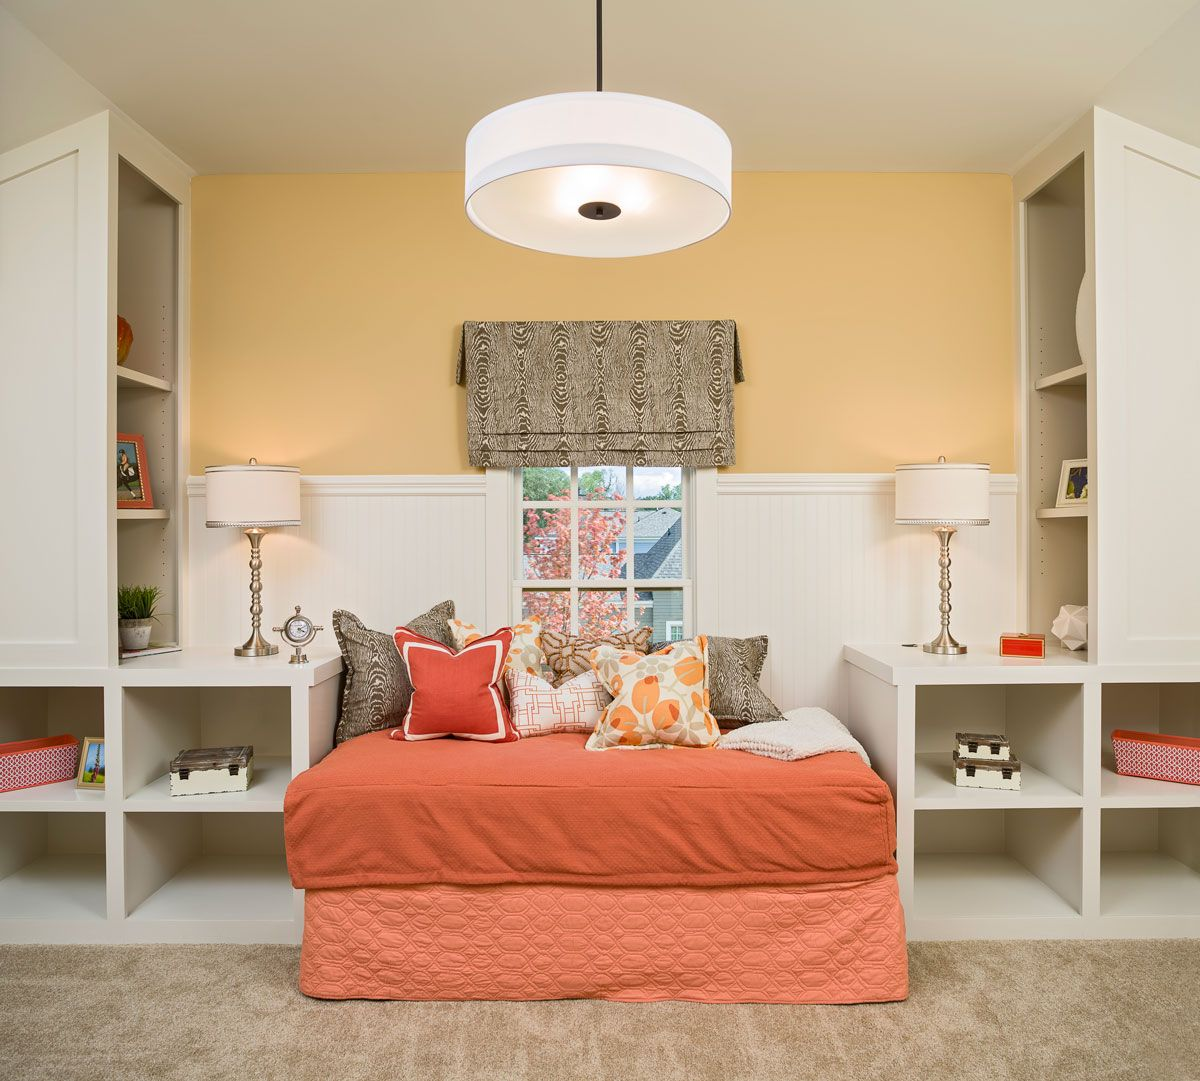 Bedroom featured in the Beaufort I - Village Builders By JMC Homes of SC